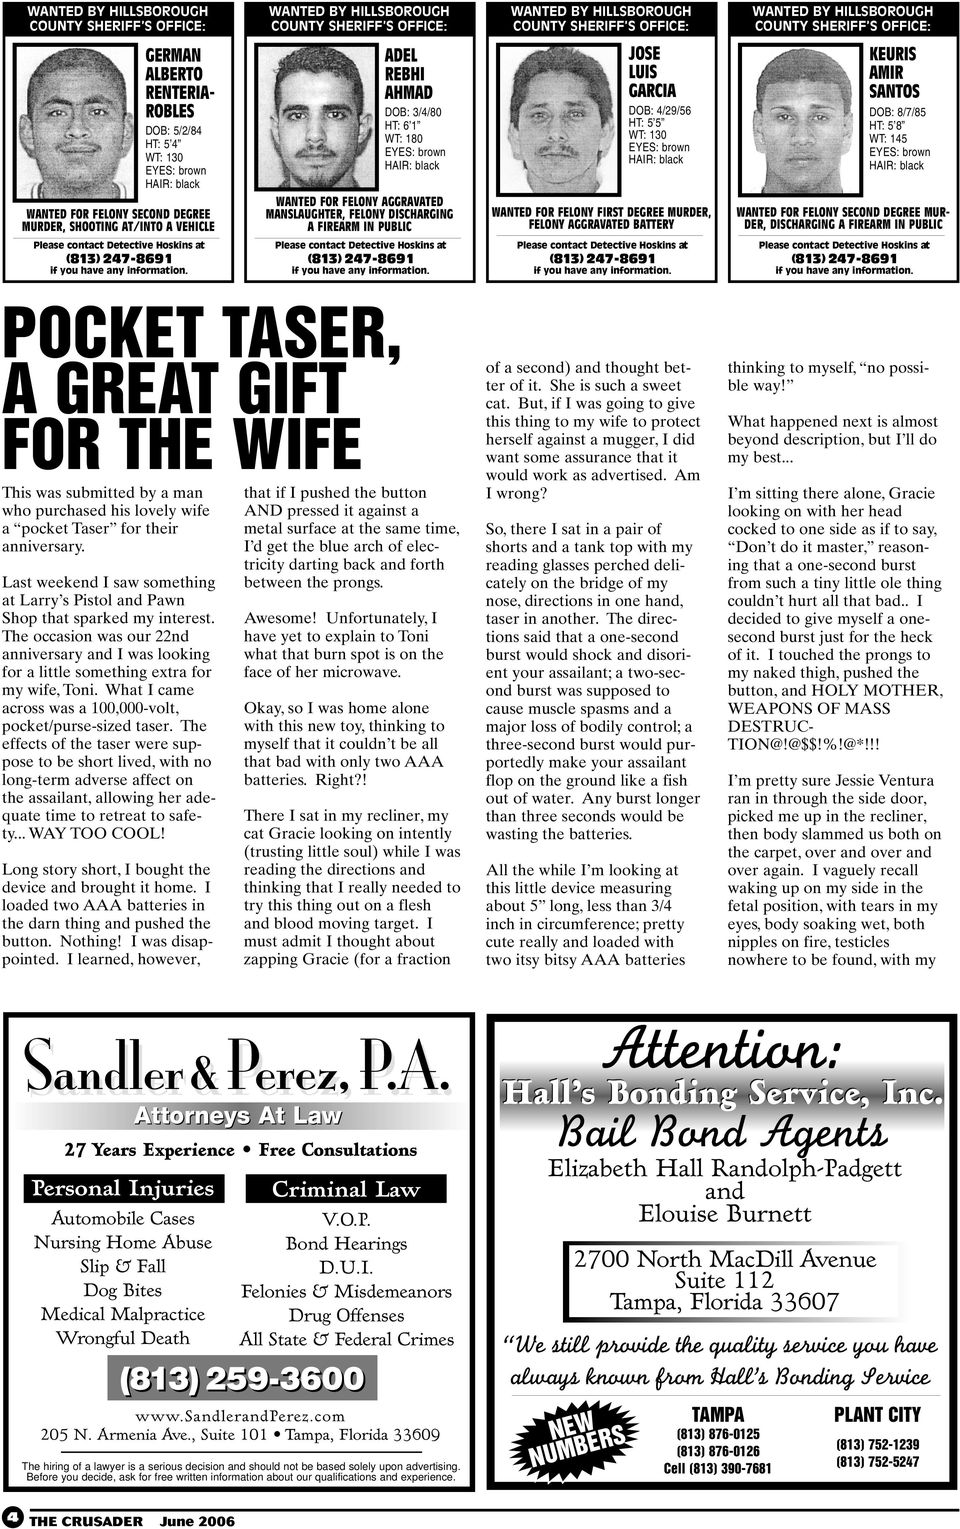 MUR- DER, DISCHARGING A FIREARM IN PUBLIC POCKET TASER, A GREAT GIFT FOR THE WIFE This was submitted by a man who purchased his lovely wife a pocket Taser for their anniversary.